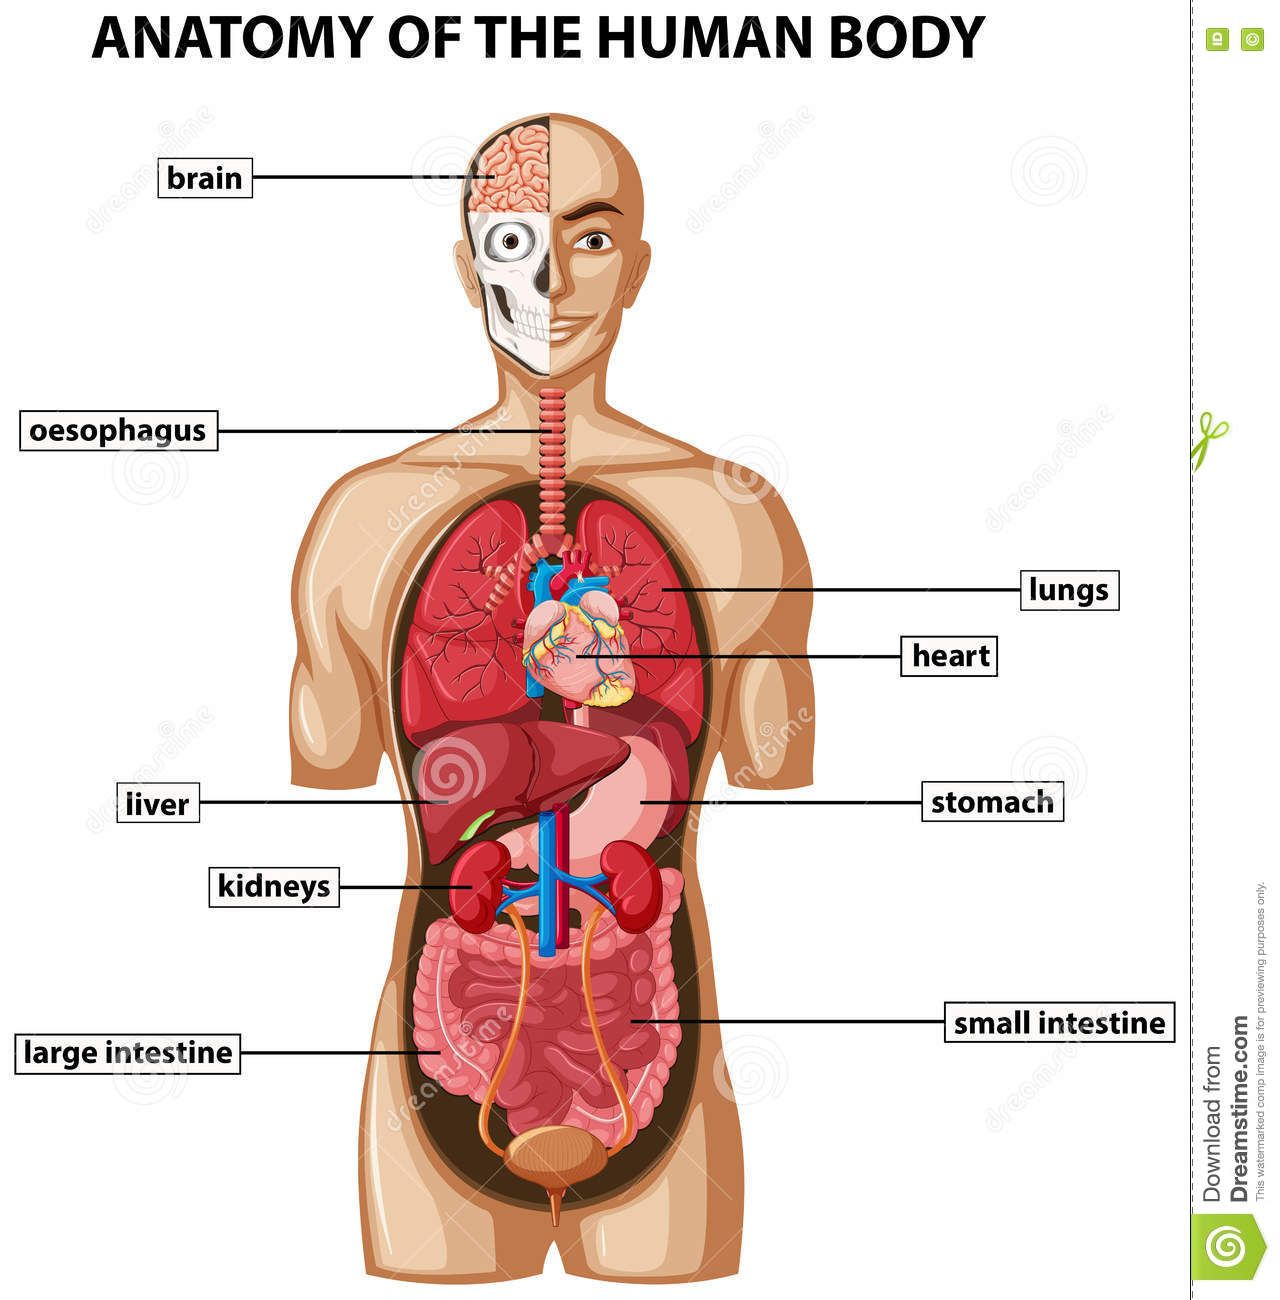 image internal organs human body image internal organs human body photos diagram of the organs [ 1280 x 1300 Pixel ]